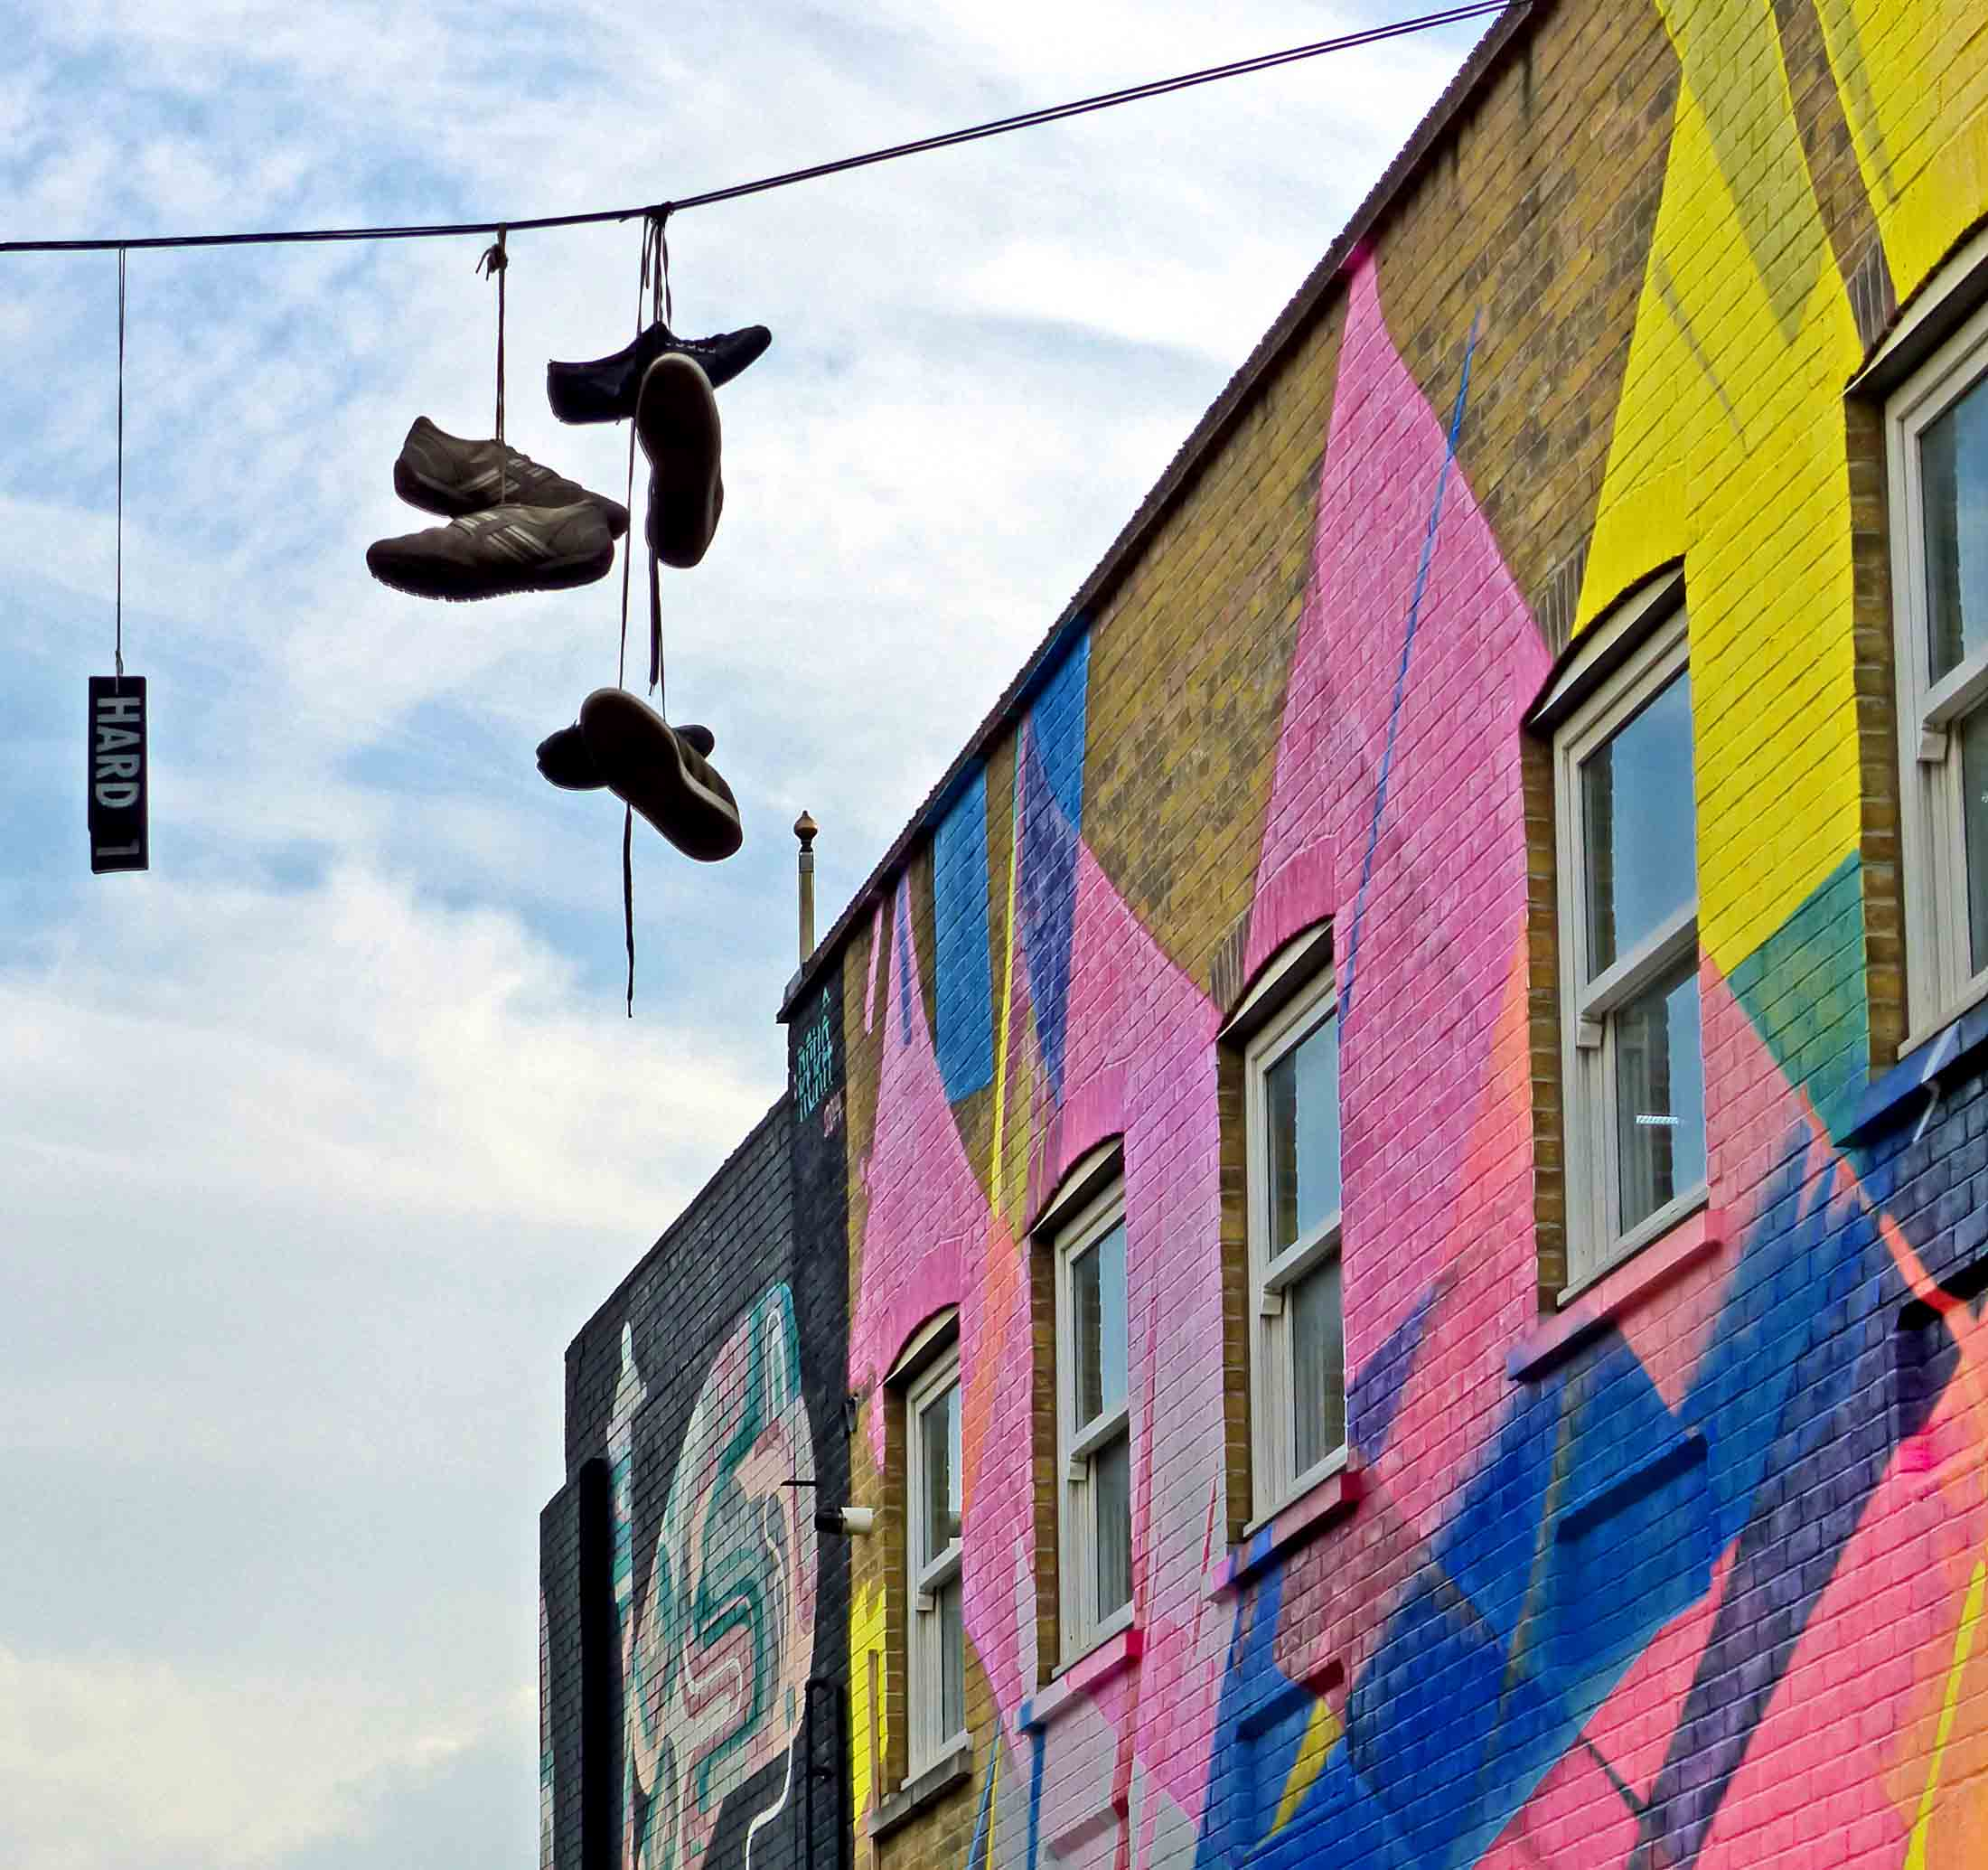 Painted buildings and shoes hanging from telegraph wire